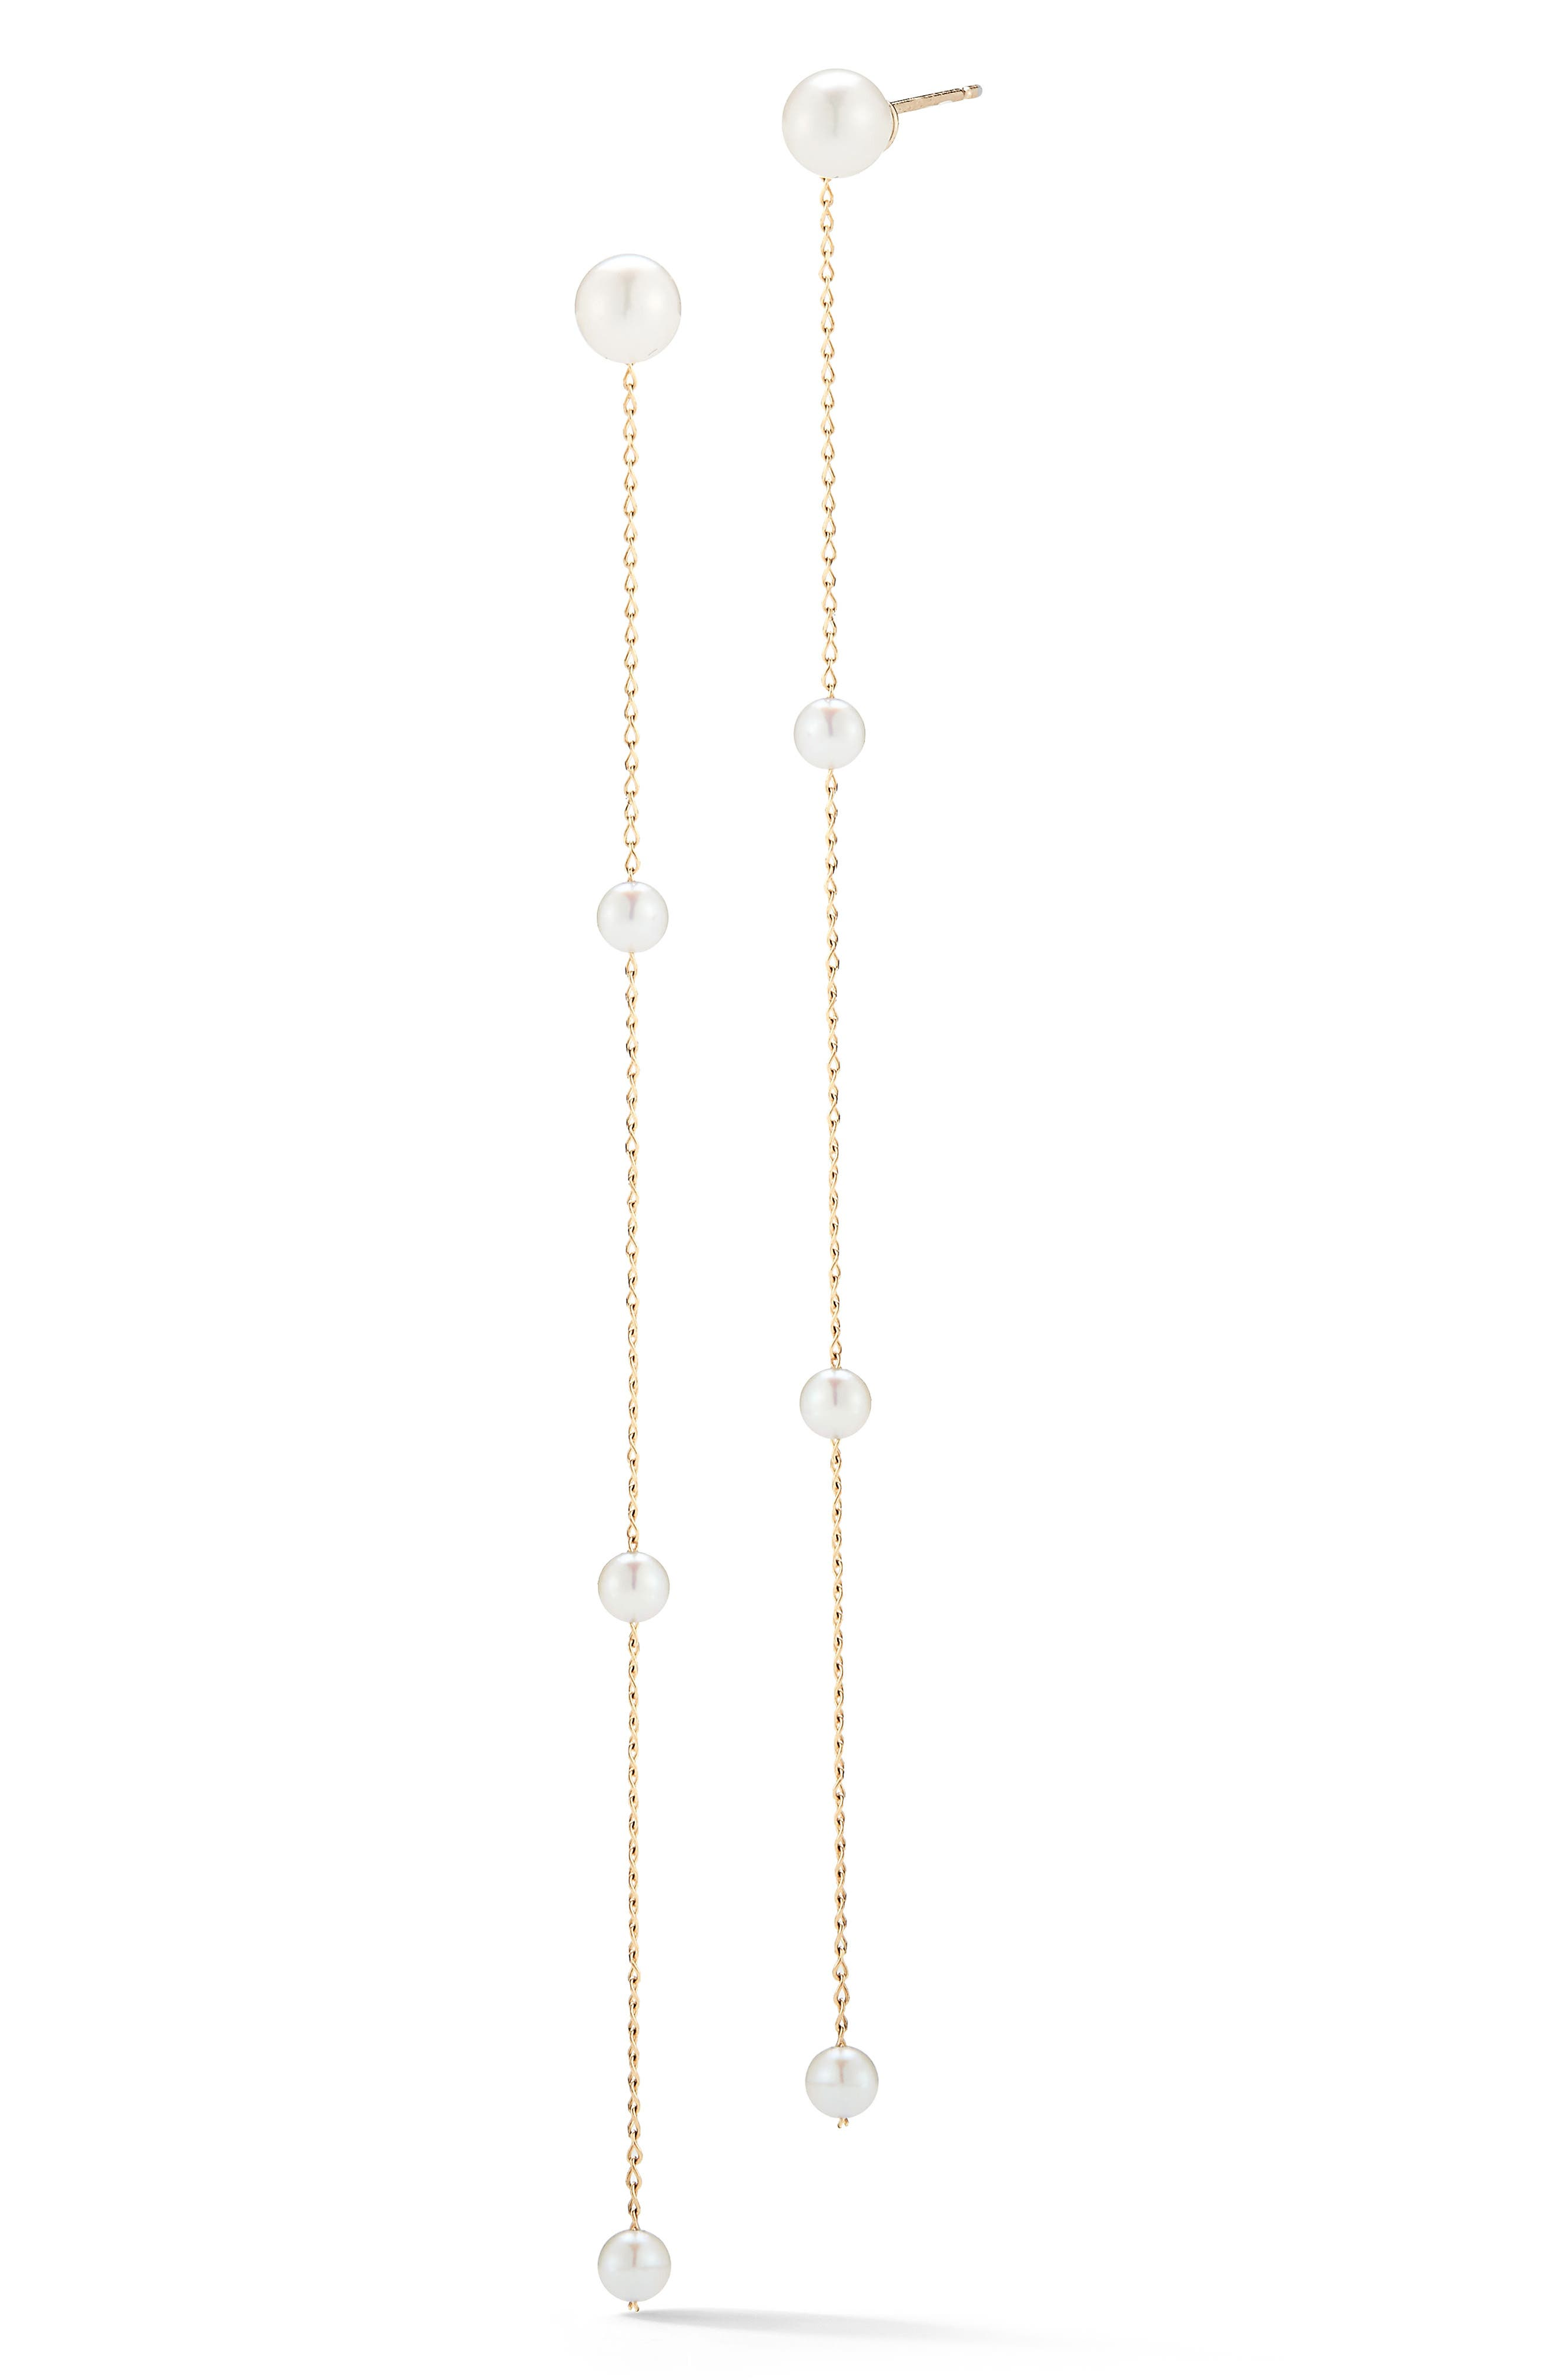 Pearl Station Linear Drop Earrings,                             Main thumbnail 1, color,                             YELLOW GOLD